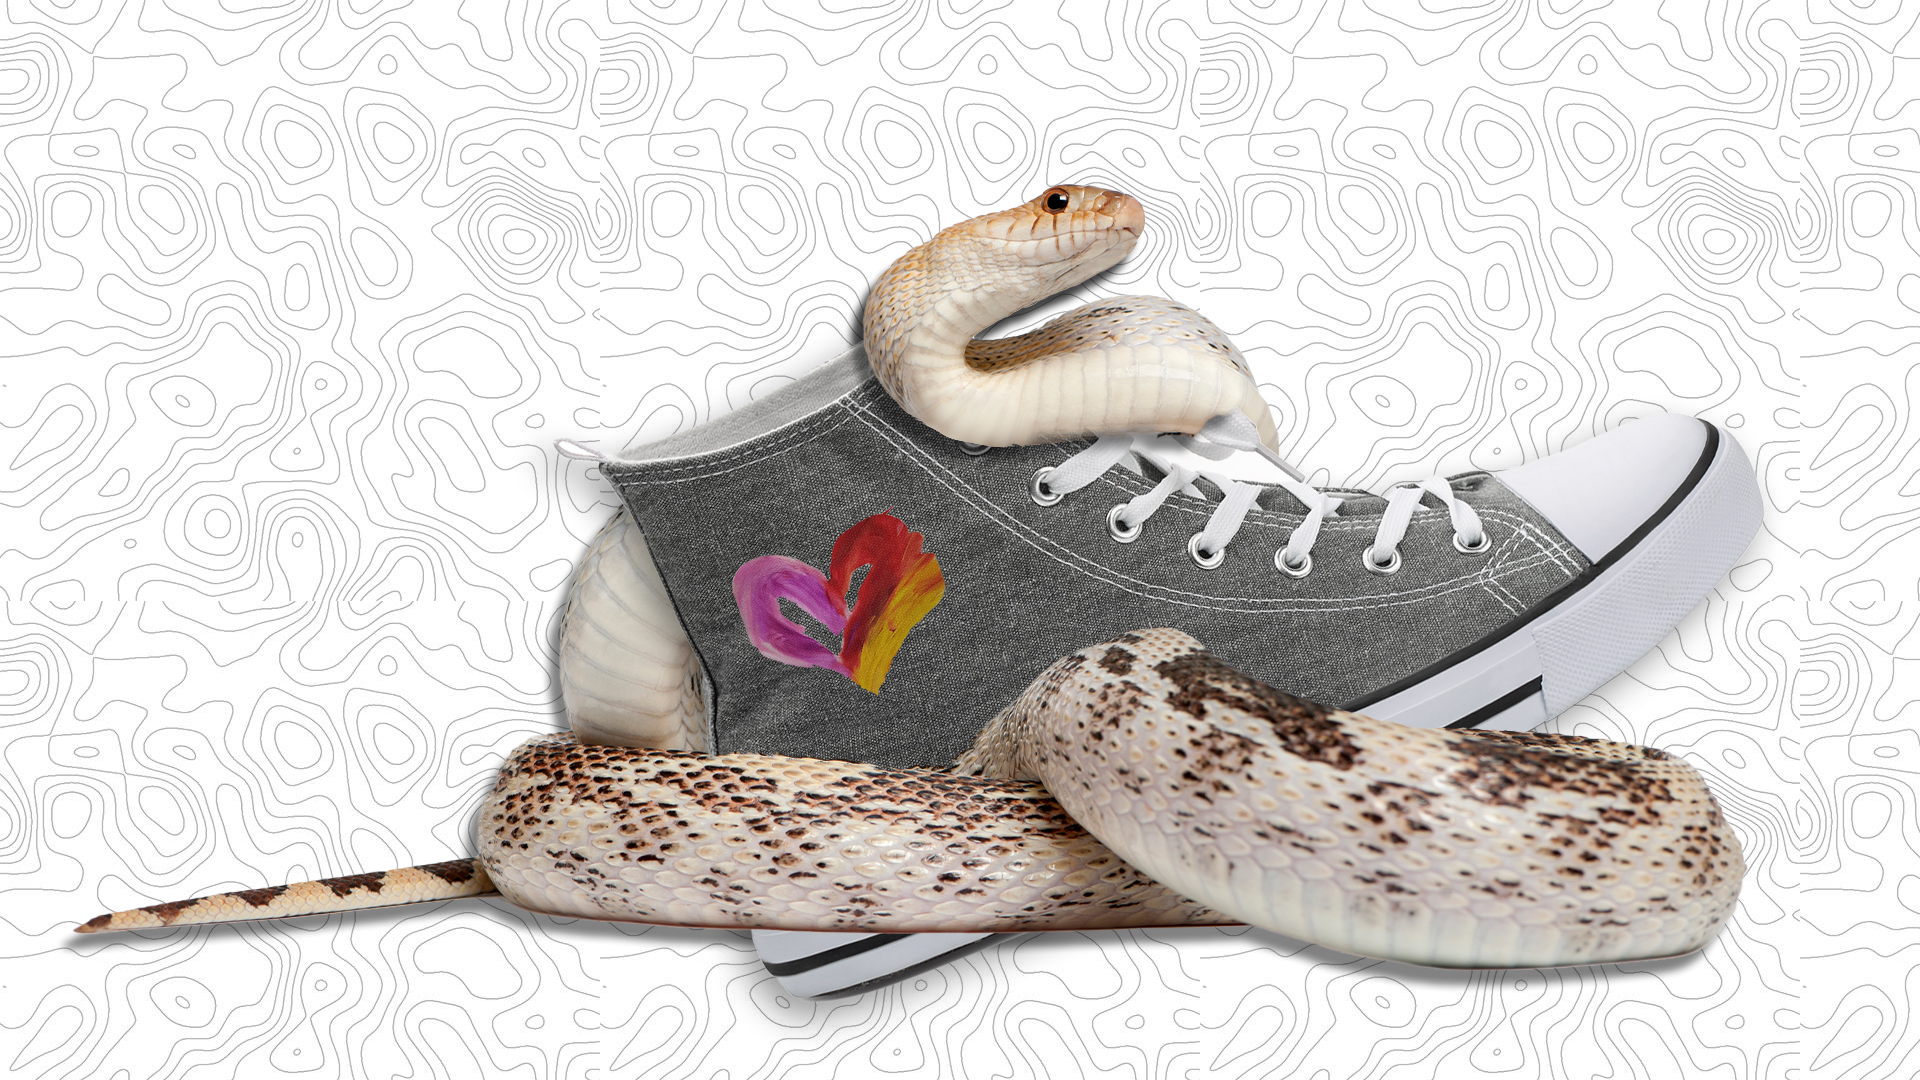 My Snake Has Shoes